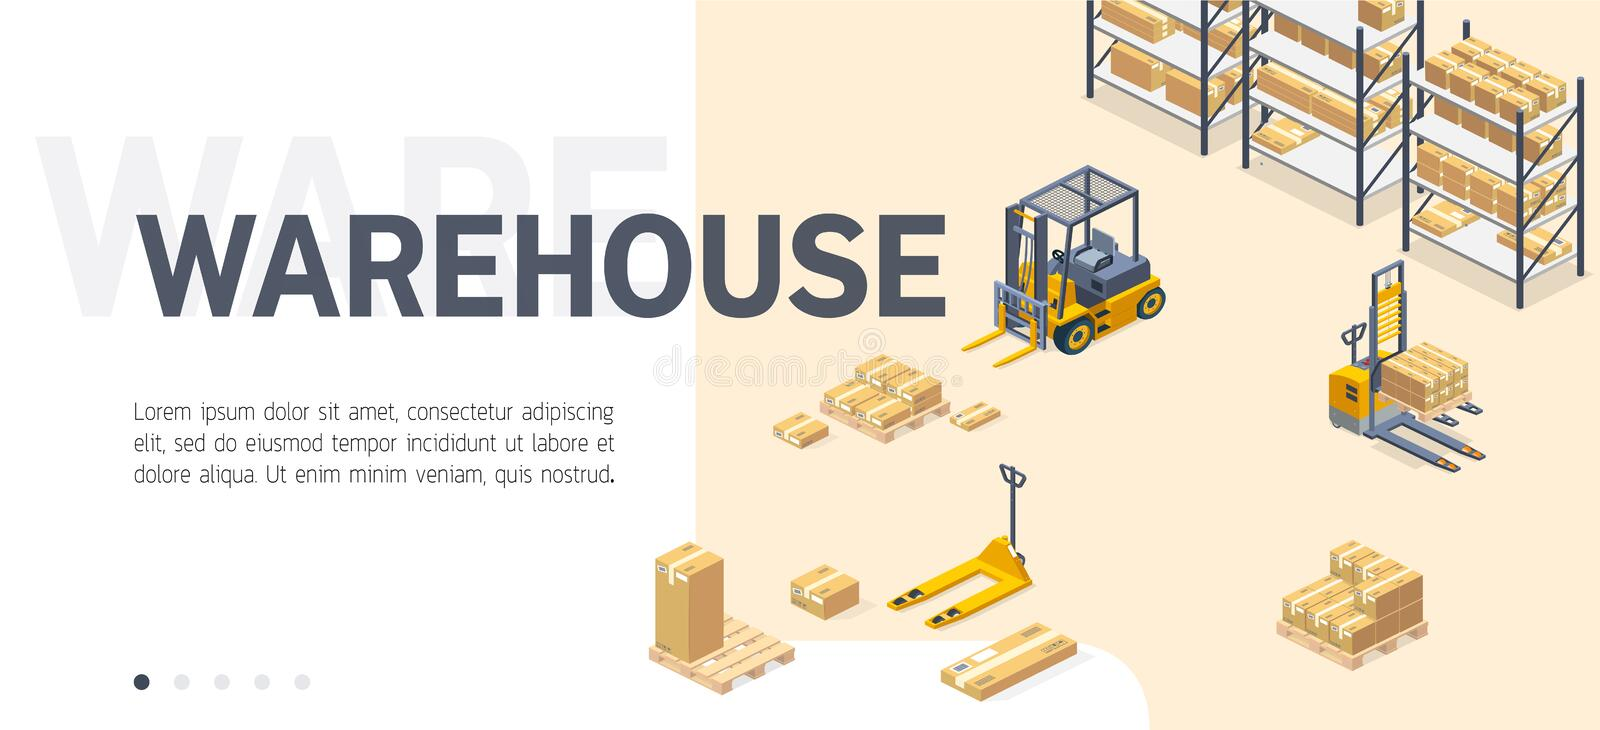 Warehouse service site isometric vector template royalty free illustration